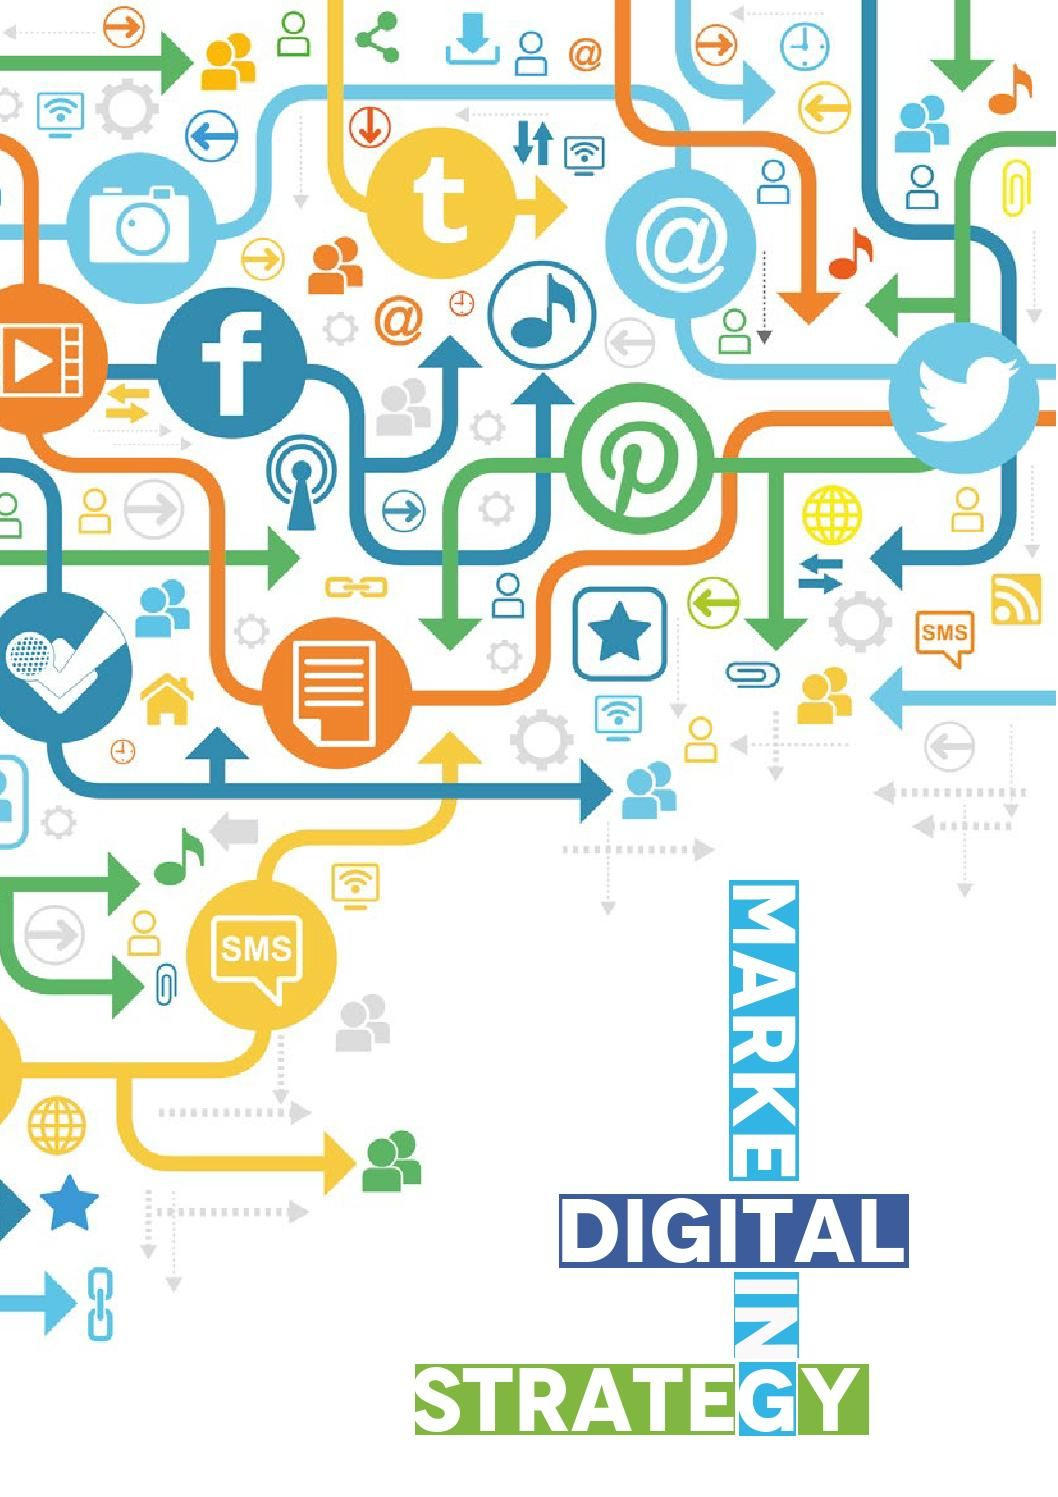 Digital Marketing Strategy  Marketing Strategies And Digital